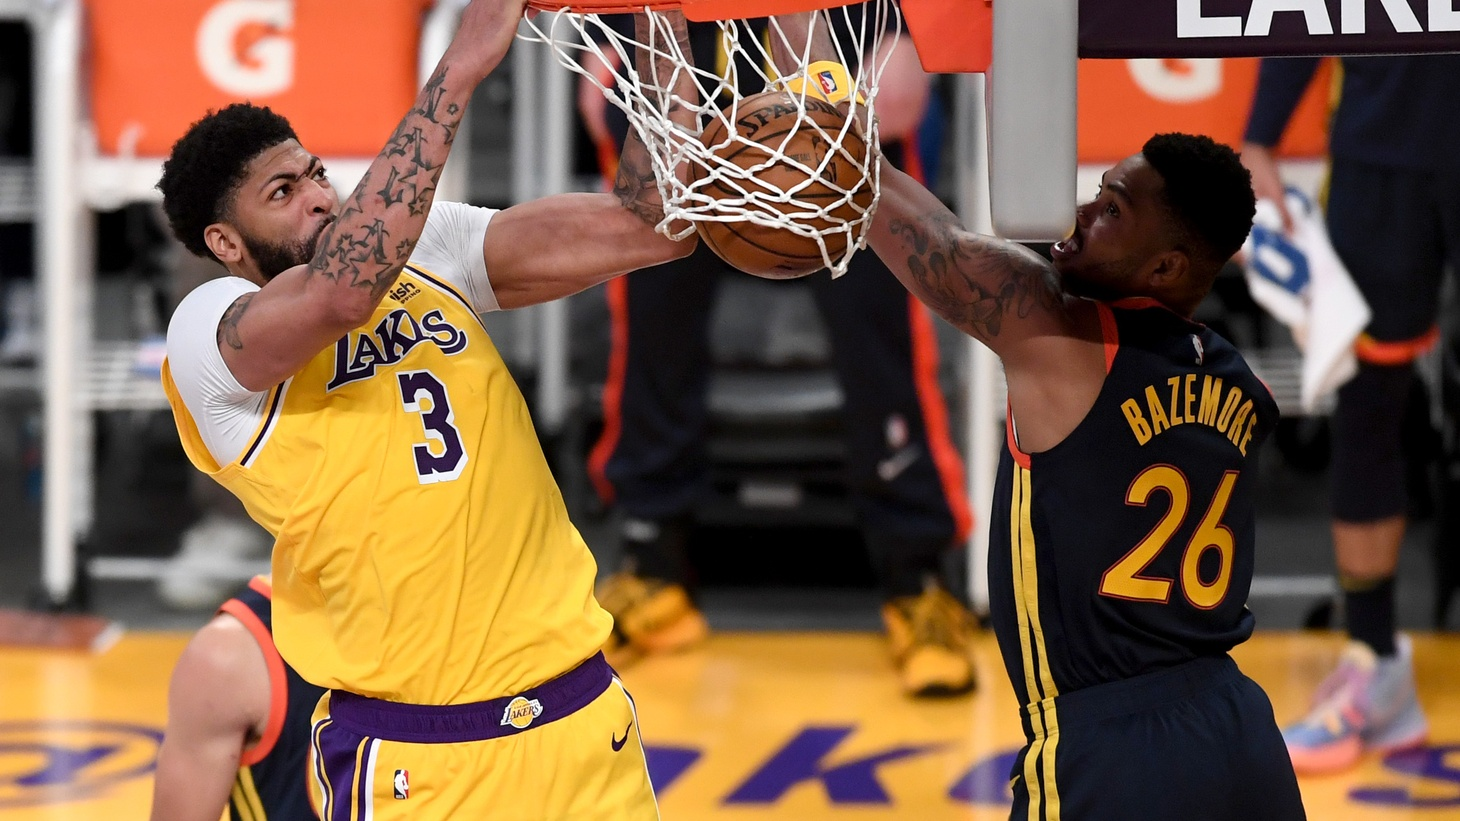 Los Angeles Lakers forward Anthony Davis (3) goes up for a dunk past Golden State Warriors forward Kent Bazemore (26) in the second half of the game at Staples Center, May 19, 2021, Los Angeles, California, USA.